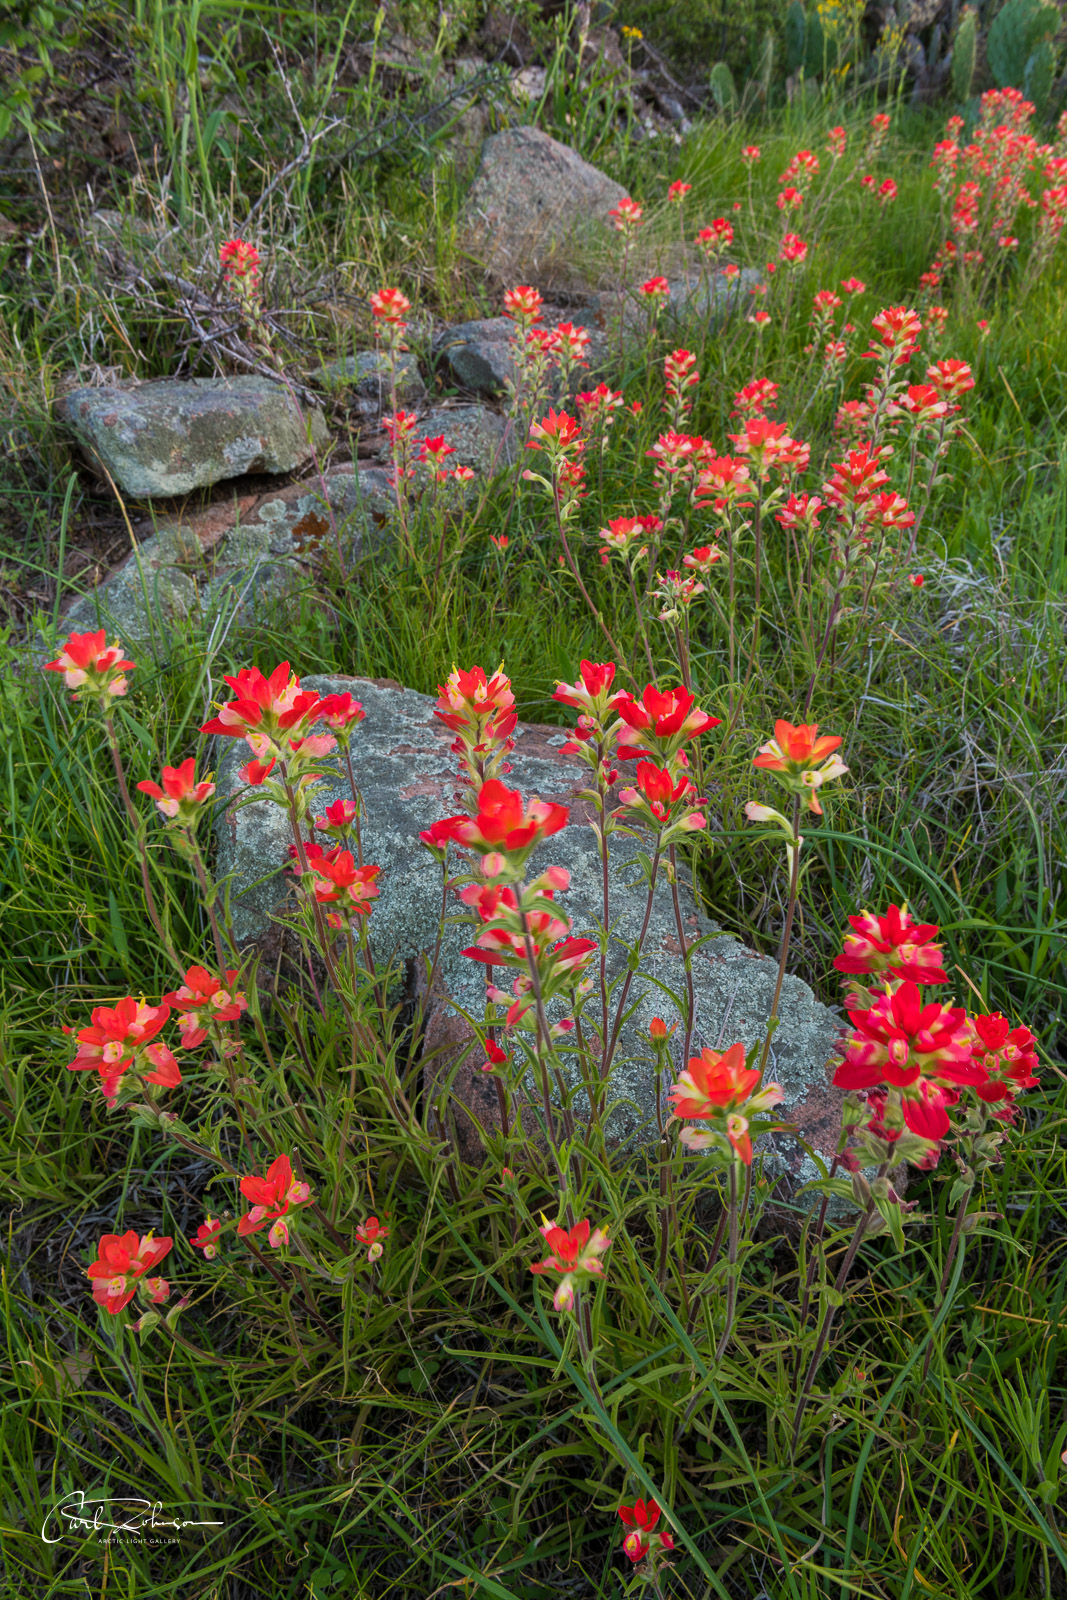 A solid patch of Indian paintbrush adds a pop of red to grasses and rocks a short walk from Park Road 4 near Burnet, Texas.